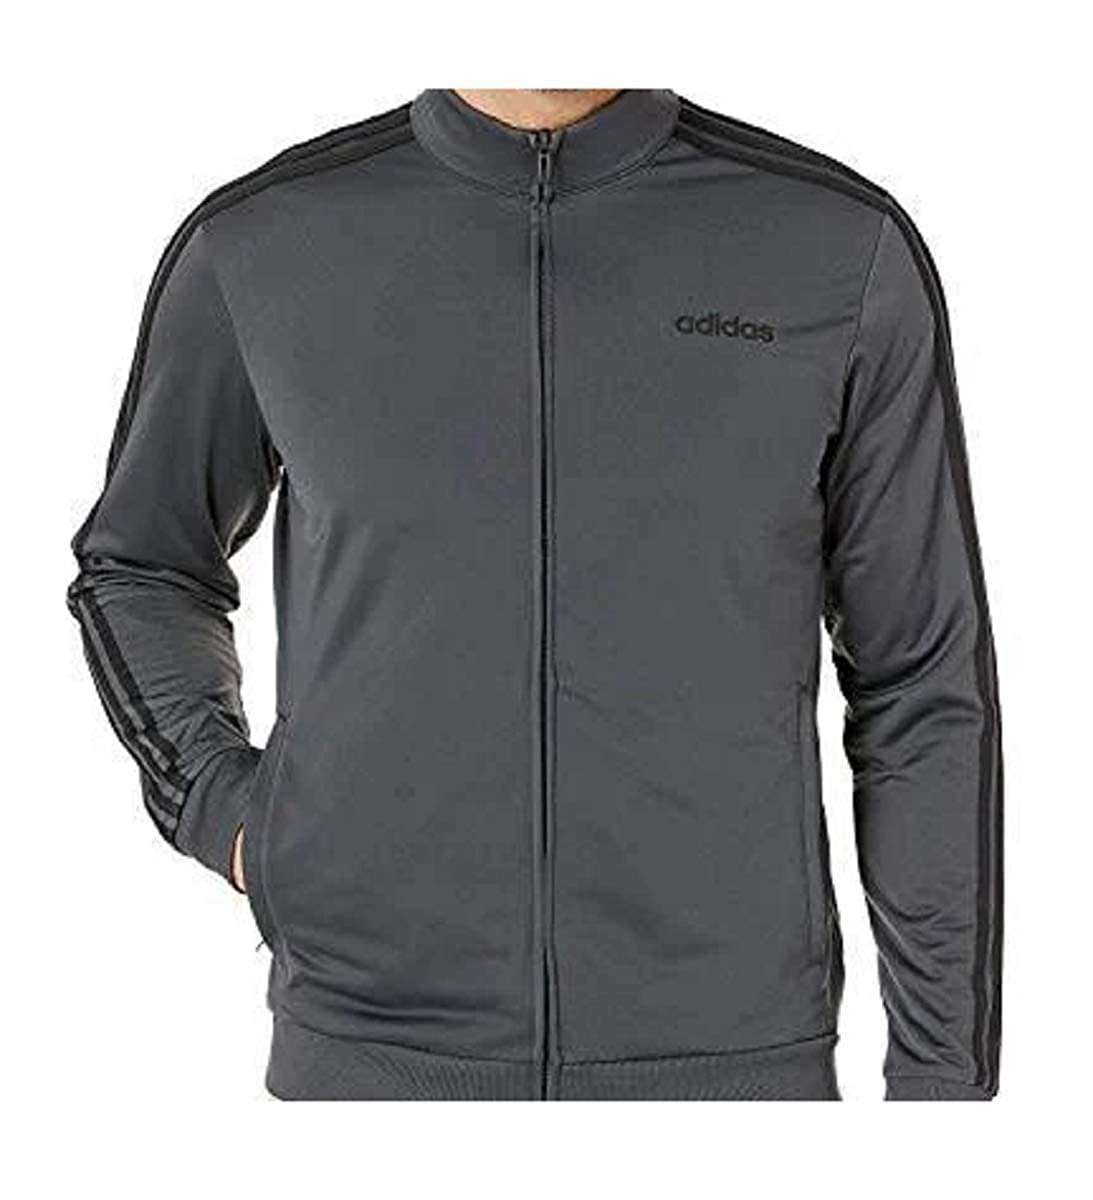 adiidas Youth 3-Stripes Track Jacket